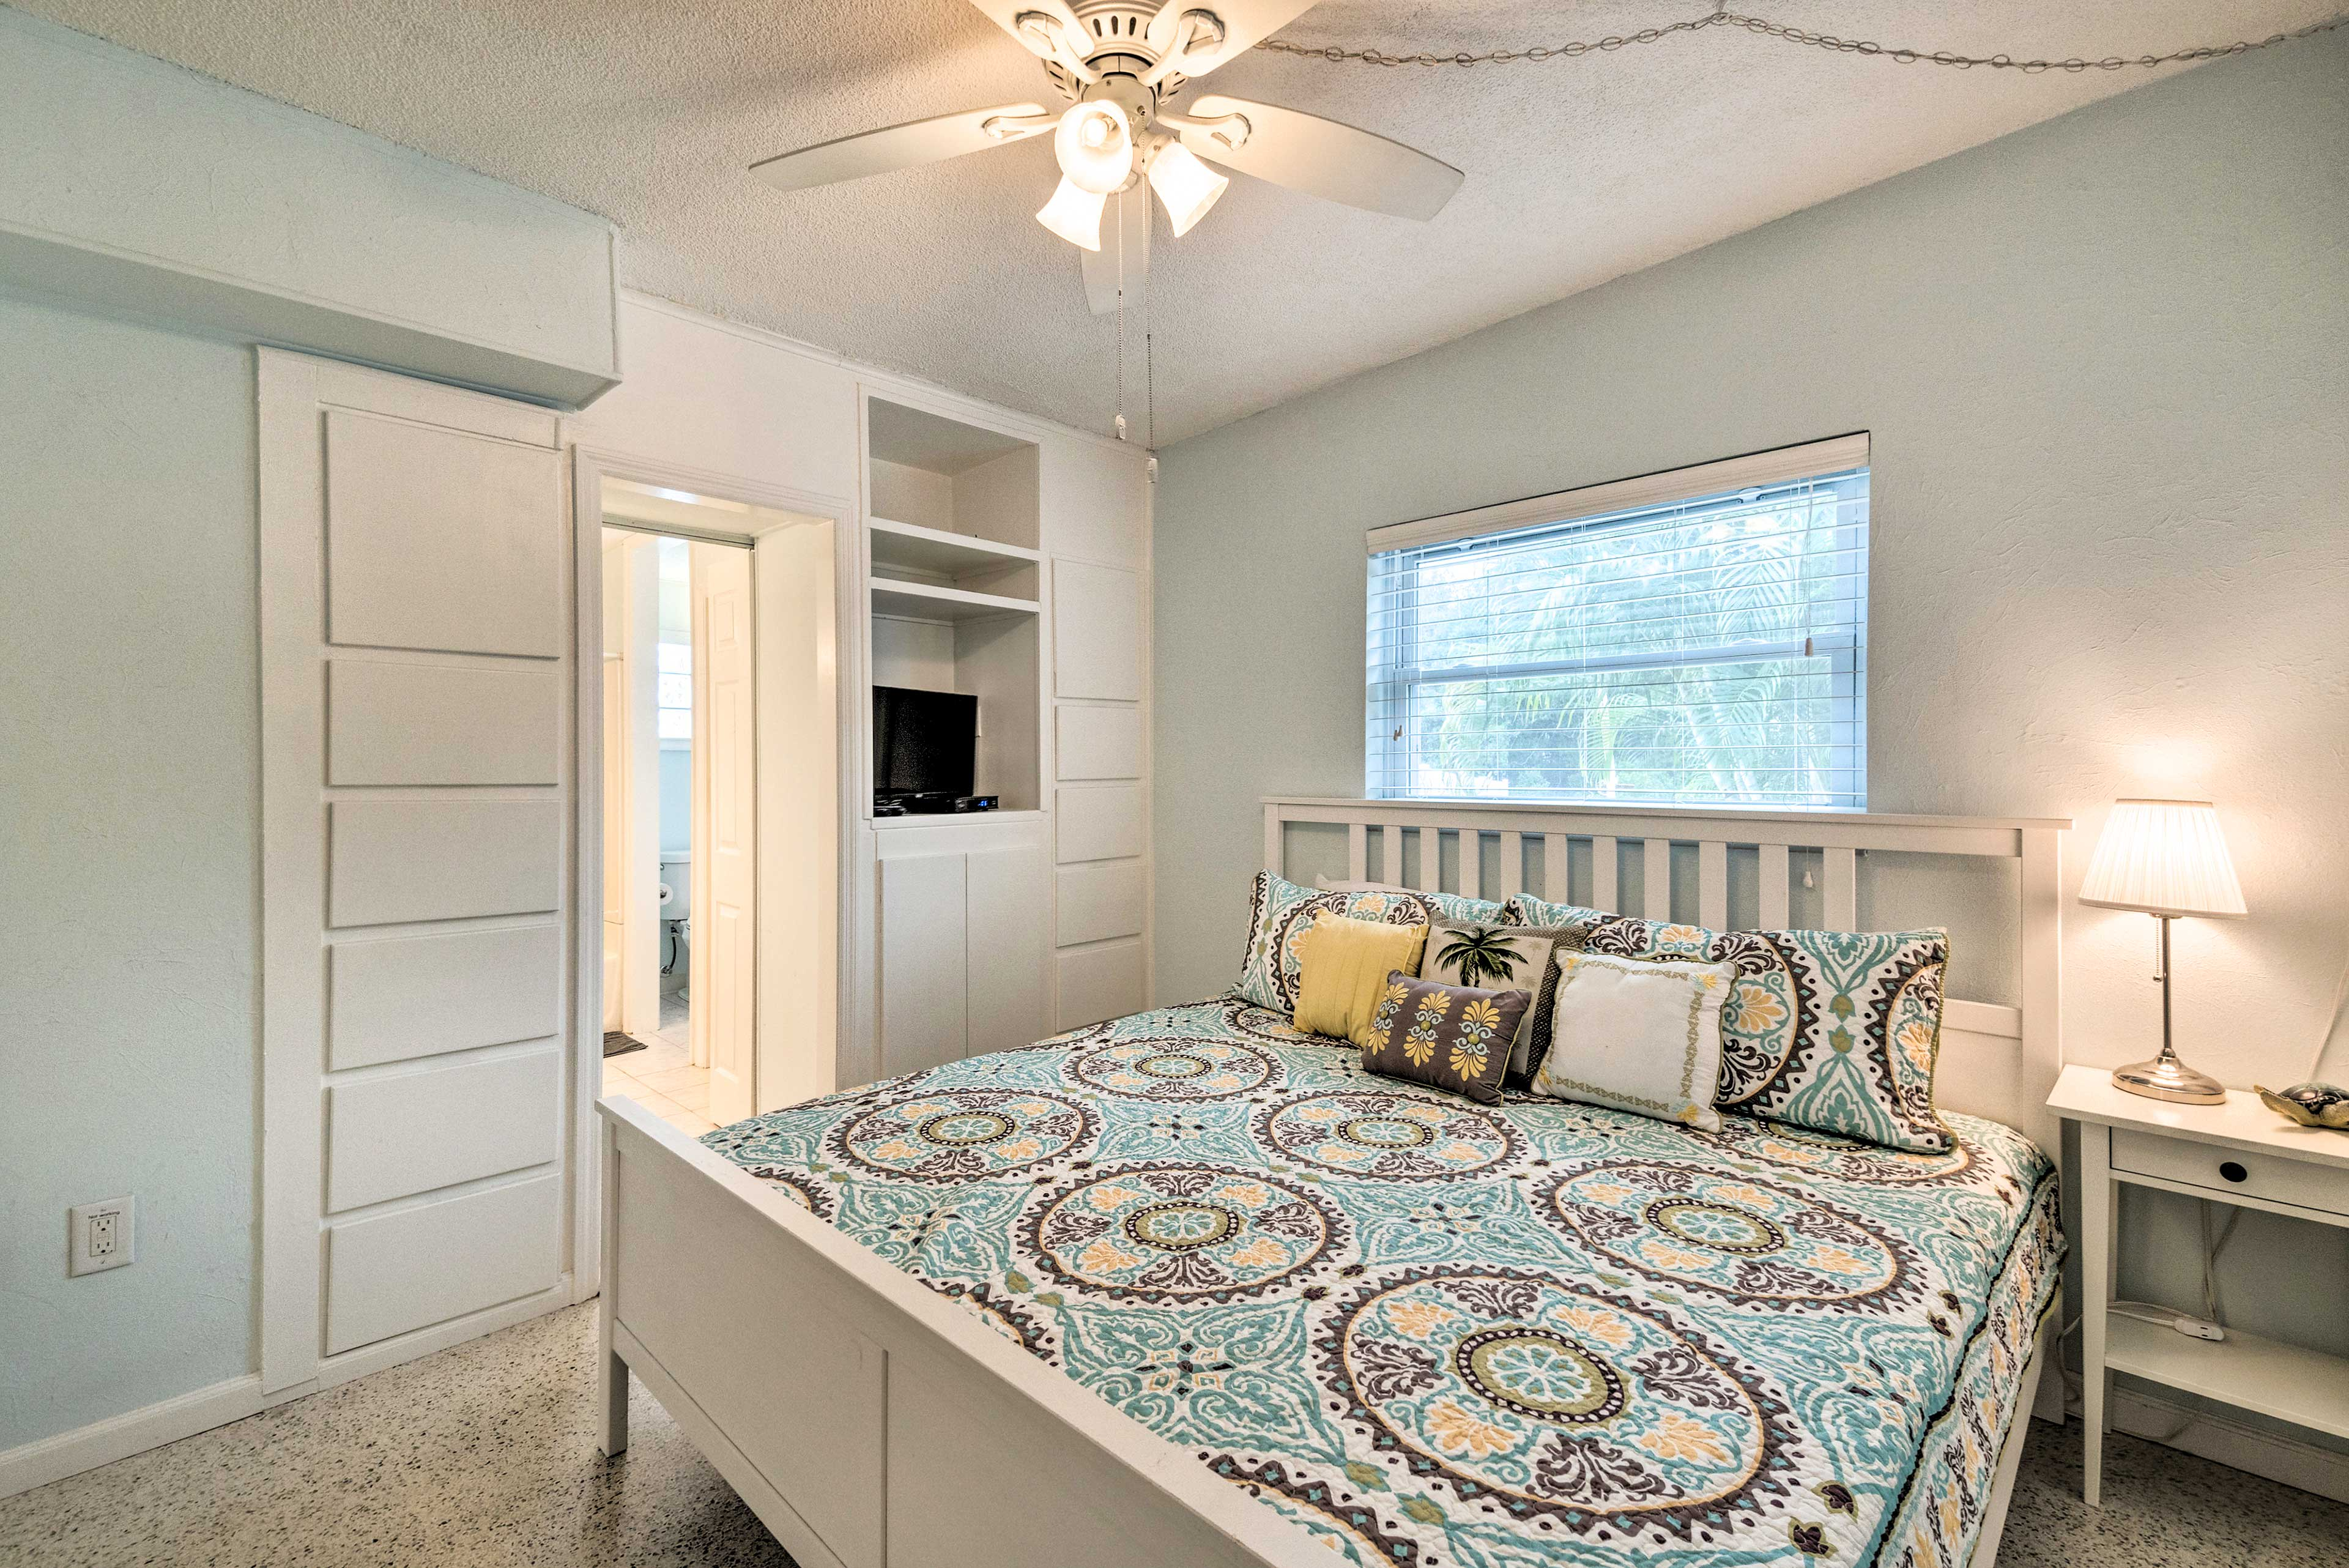 Those staying in the master bedroom can curl up on the king bed.